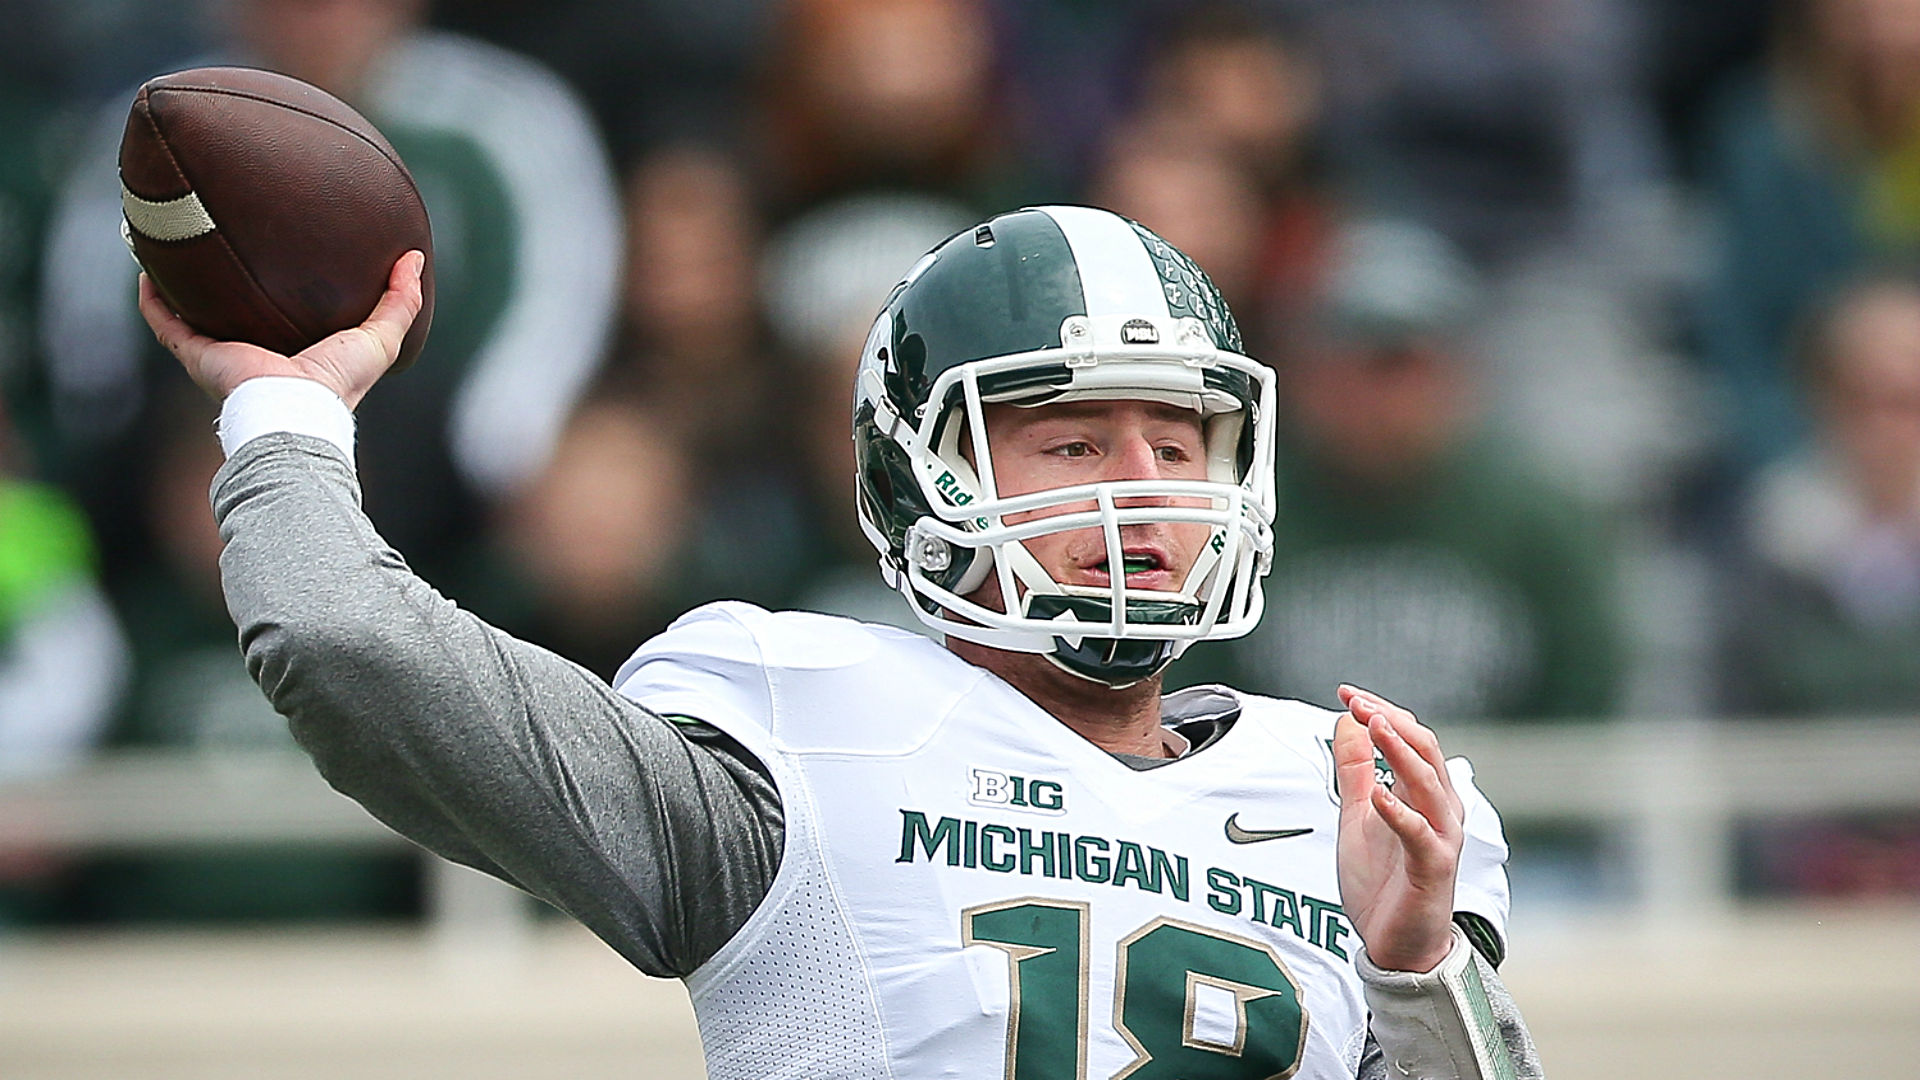 Only one thing left to do for Michigan State's Connor Cook